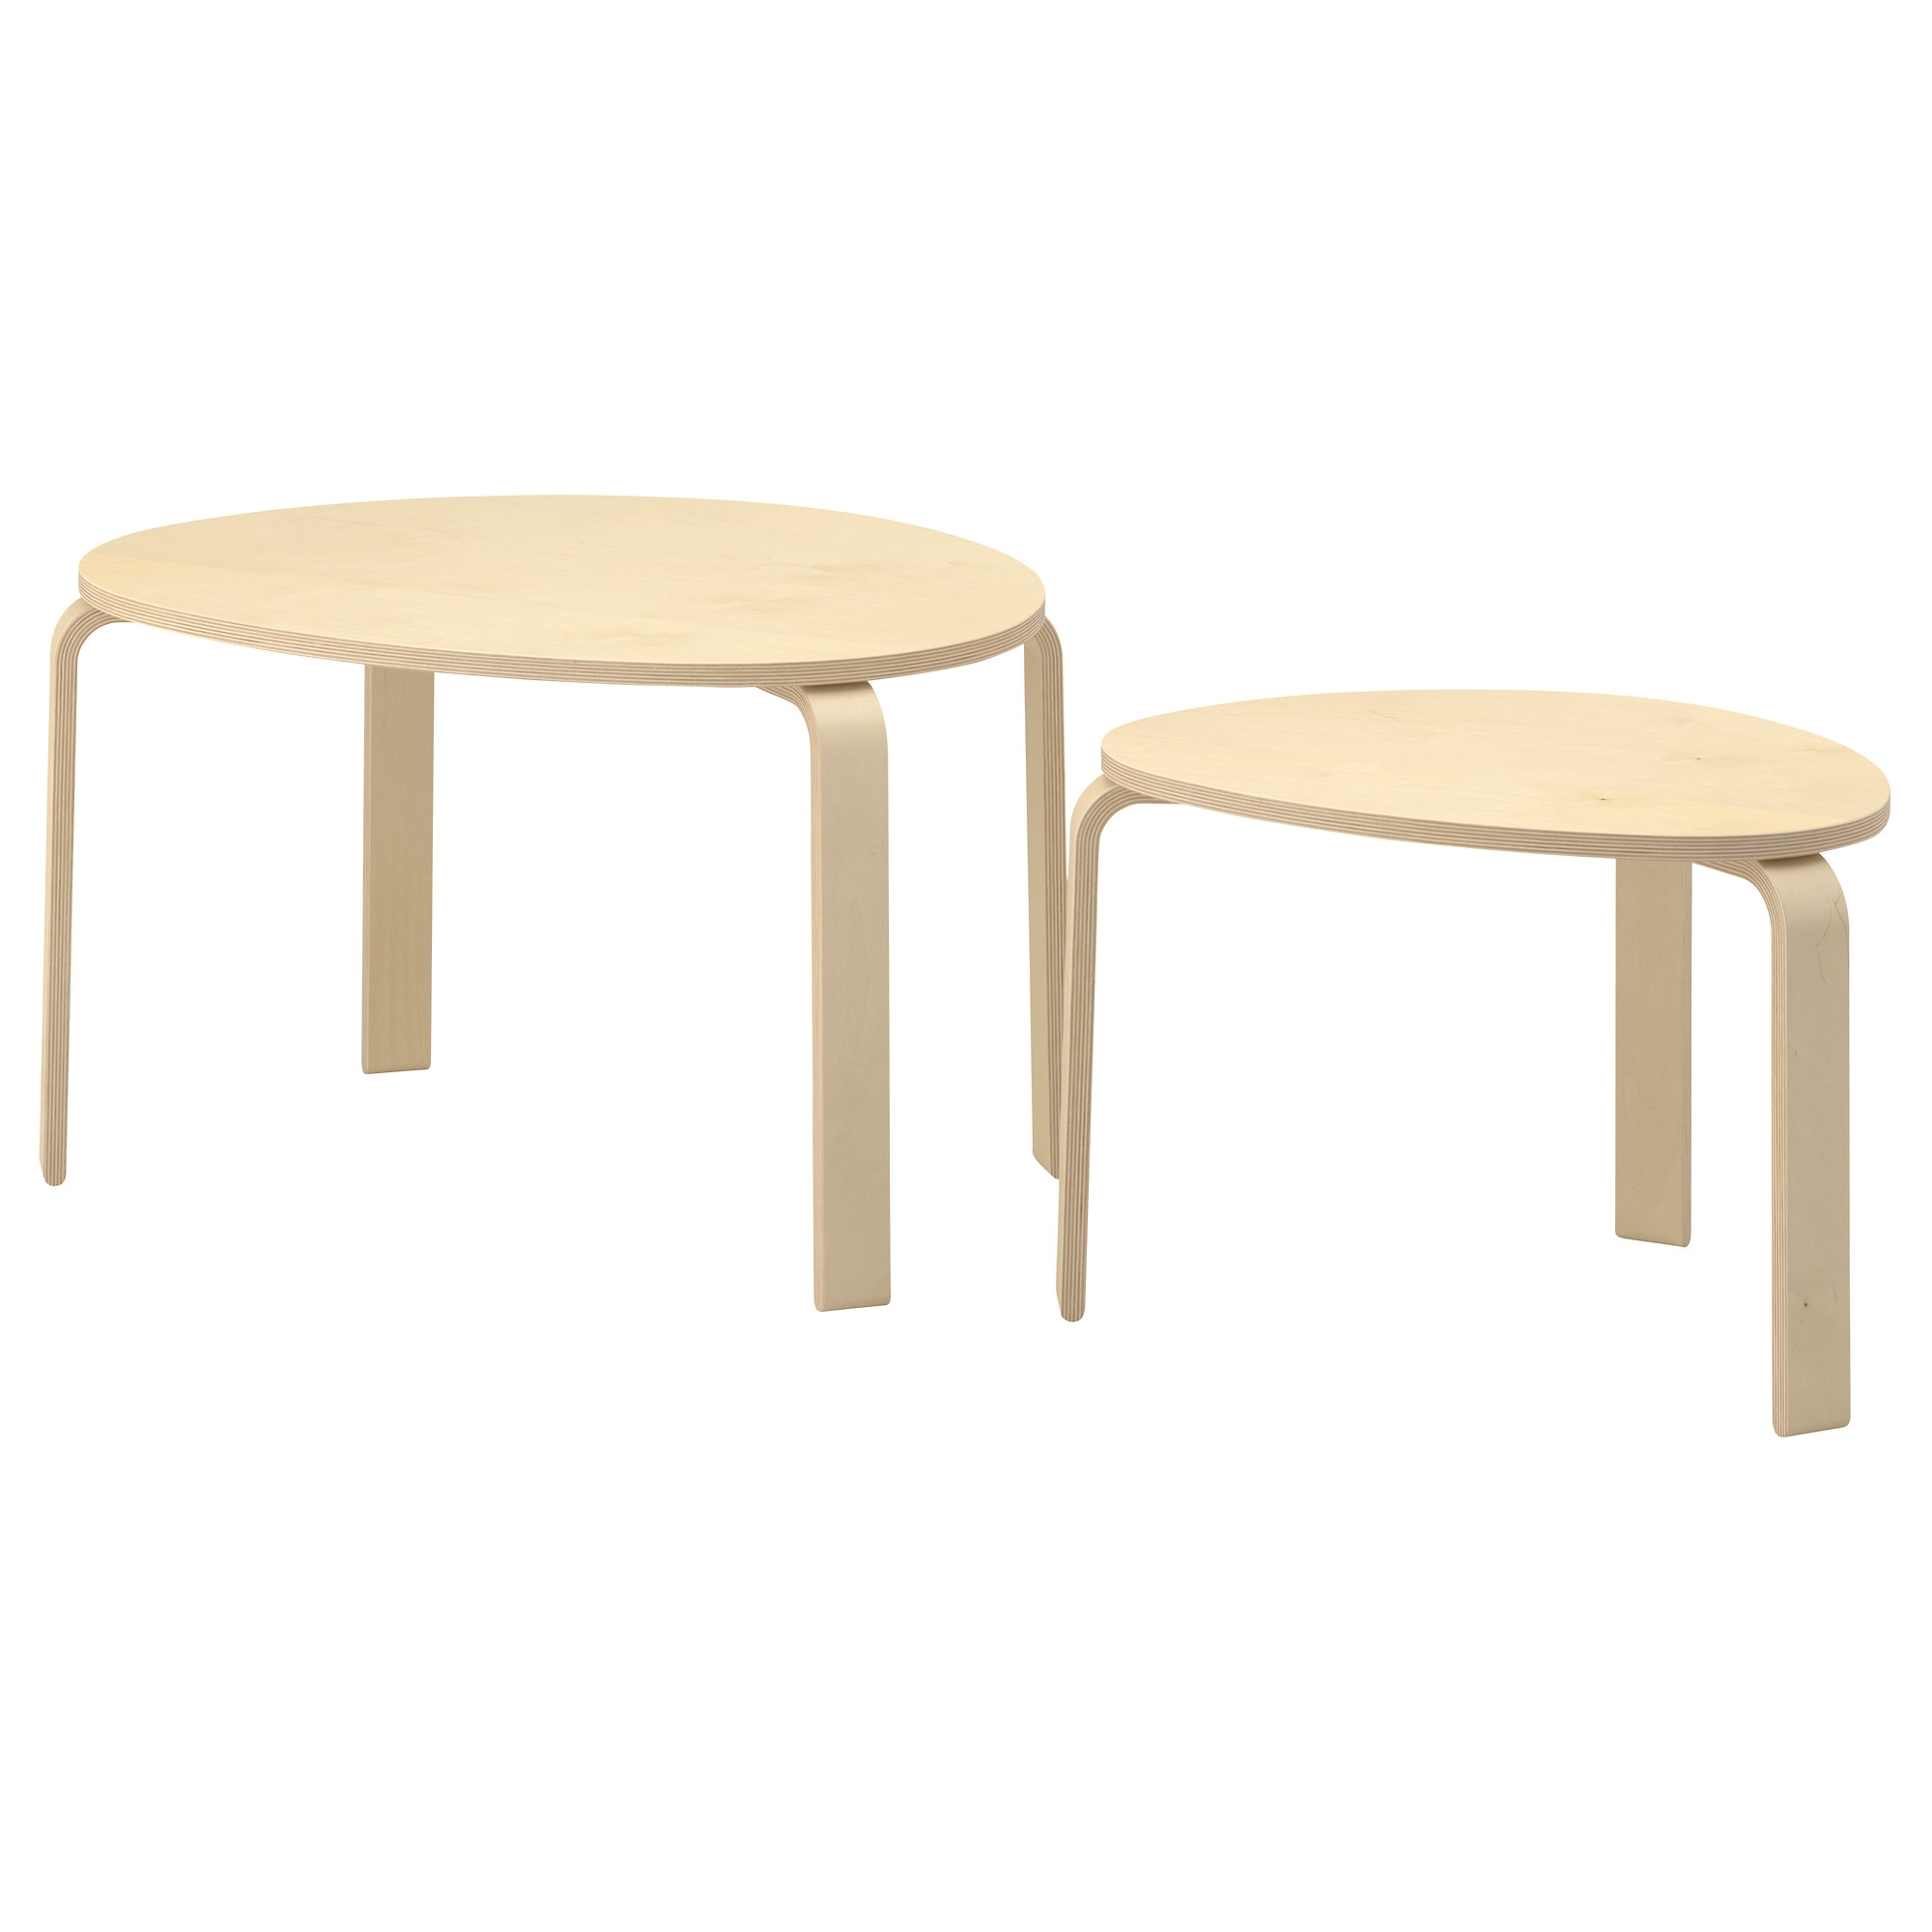 Ikea Latvia - Shop For Furniture, Lighting, Home Accessories & More intended for Set Of Nesting Coffee Tables (Image 13 of 30)